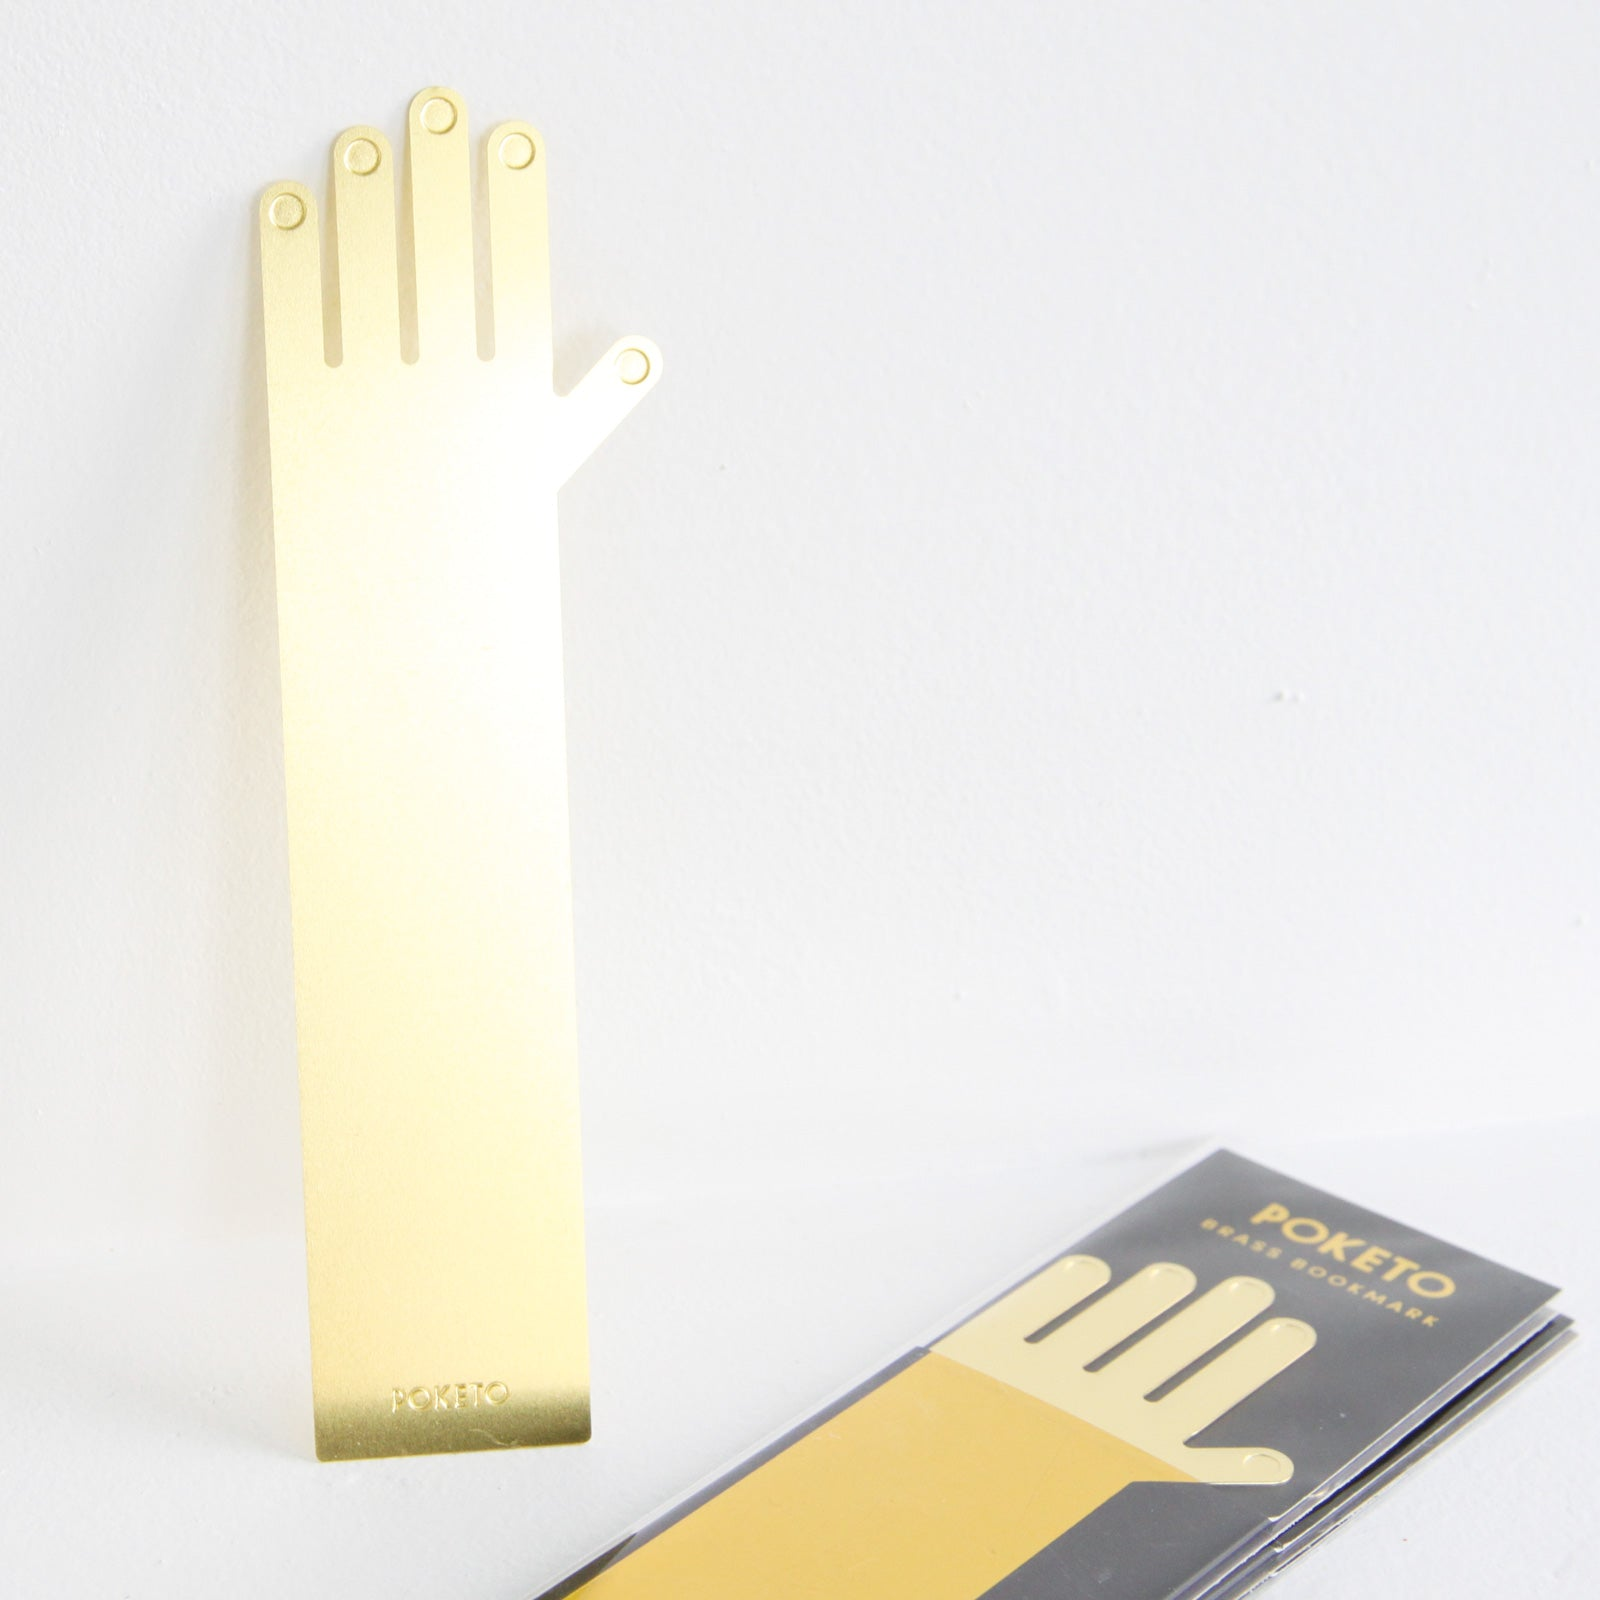 Brass Book Marks | Poketo | Poketo | Los Angeles, CA at Sustain - Gallery and Shop - Chicago, IL